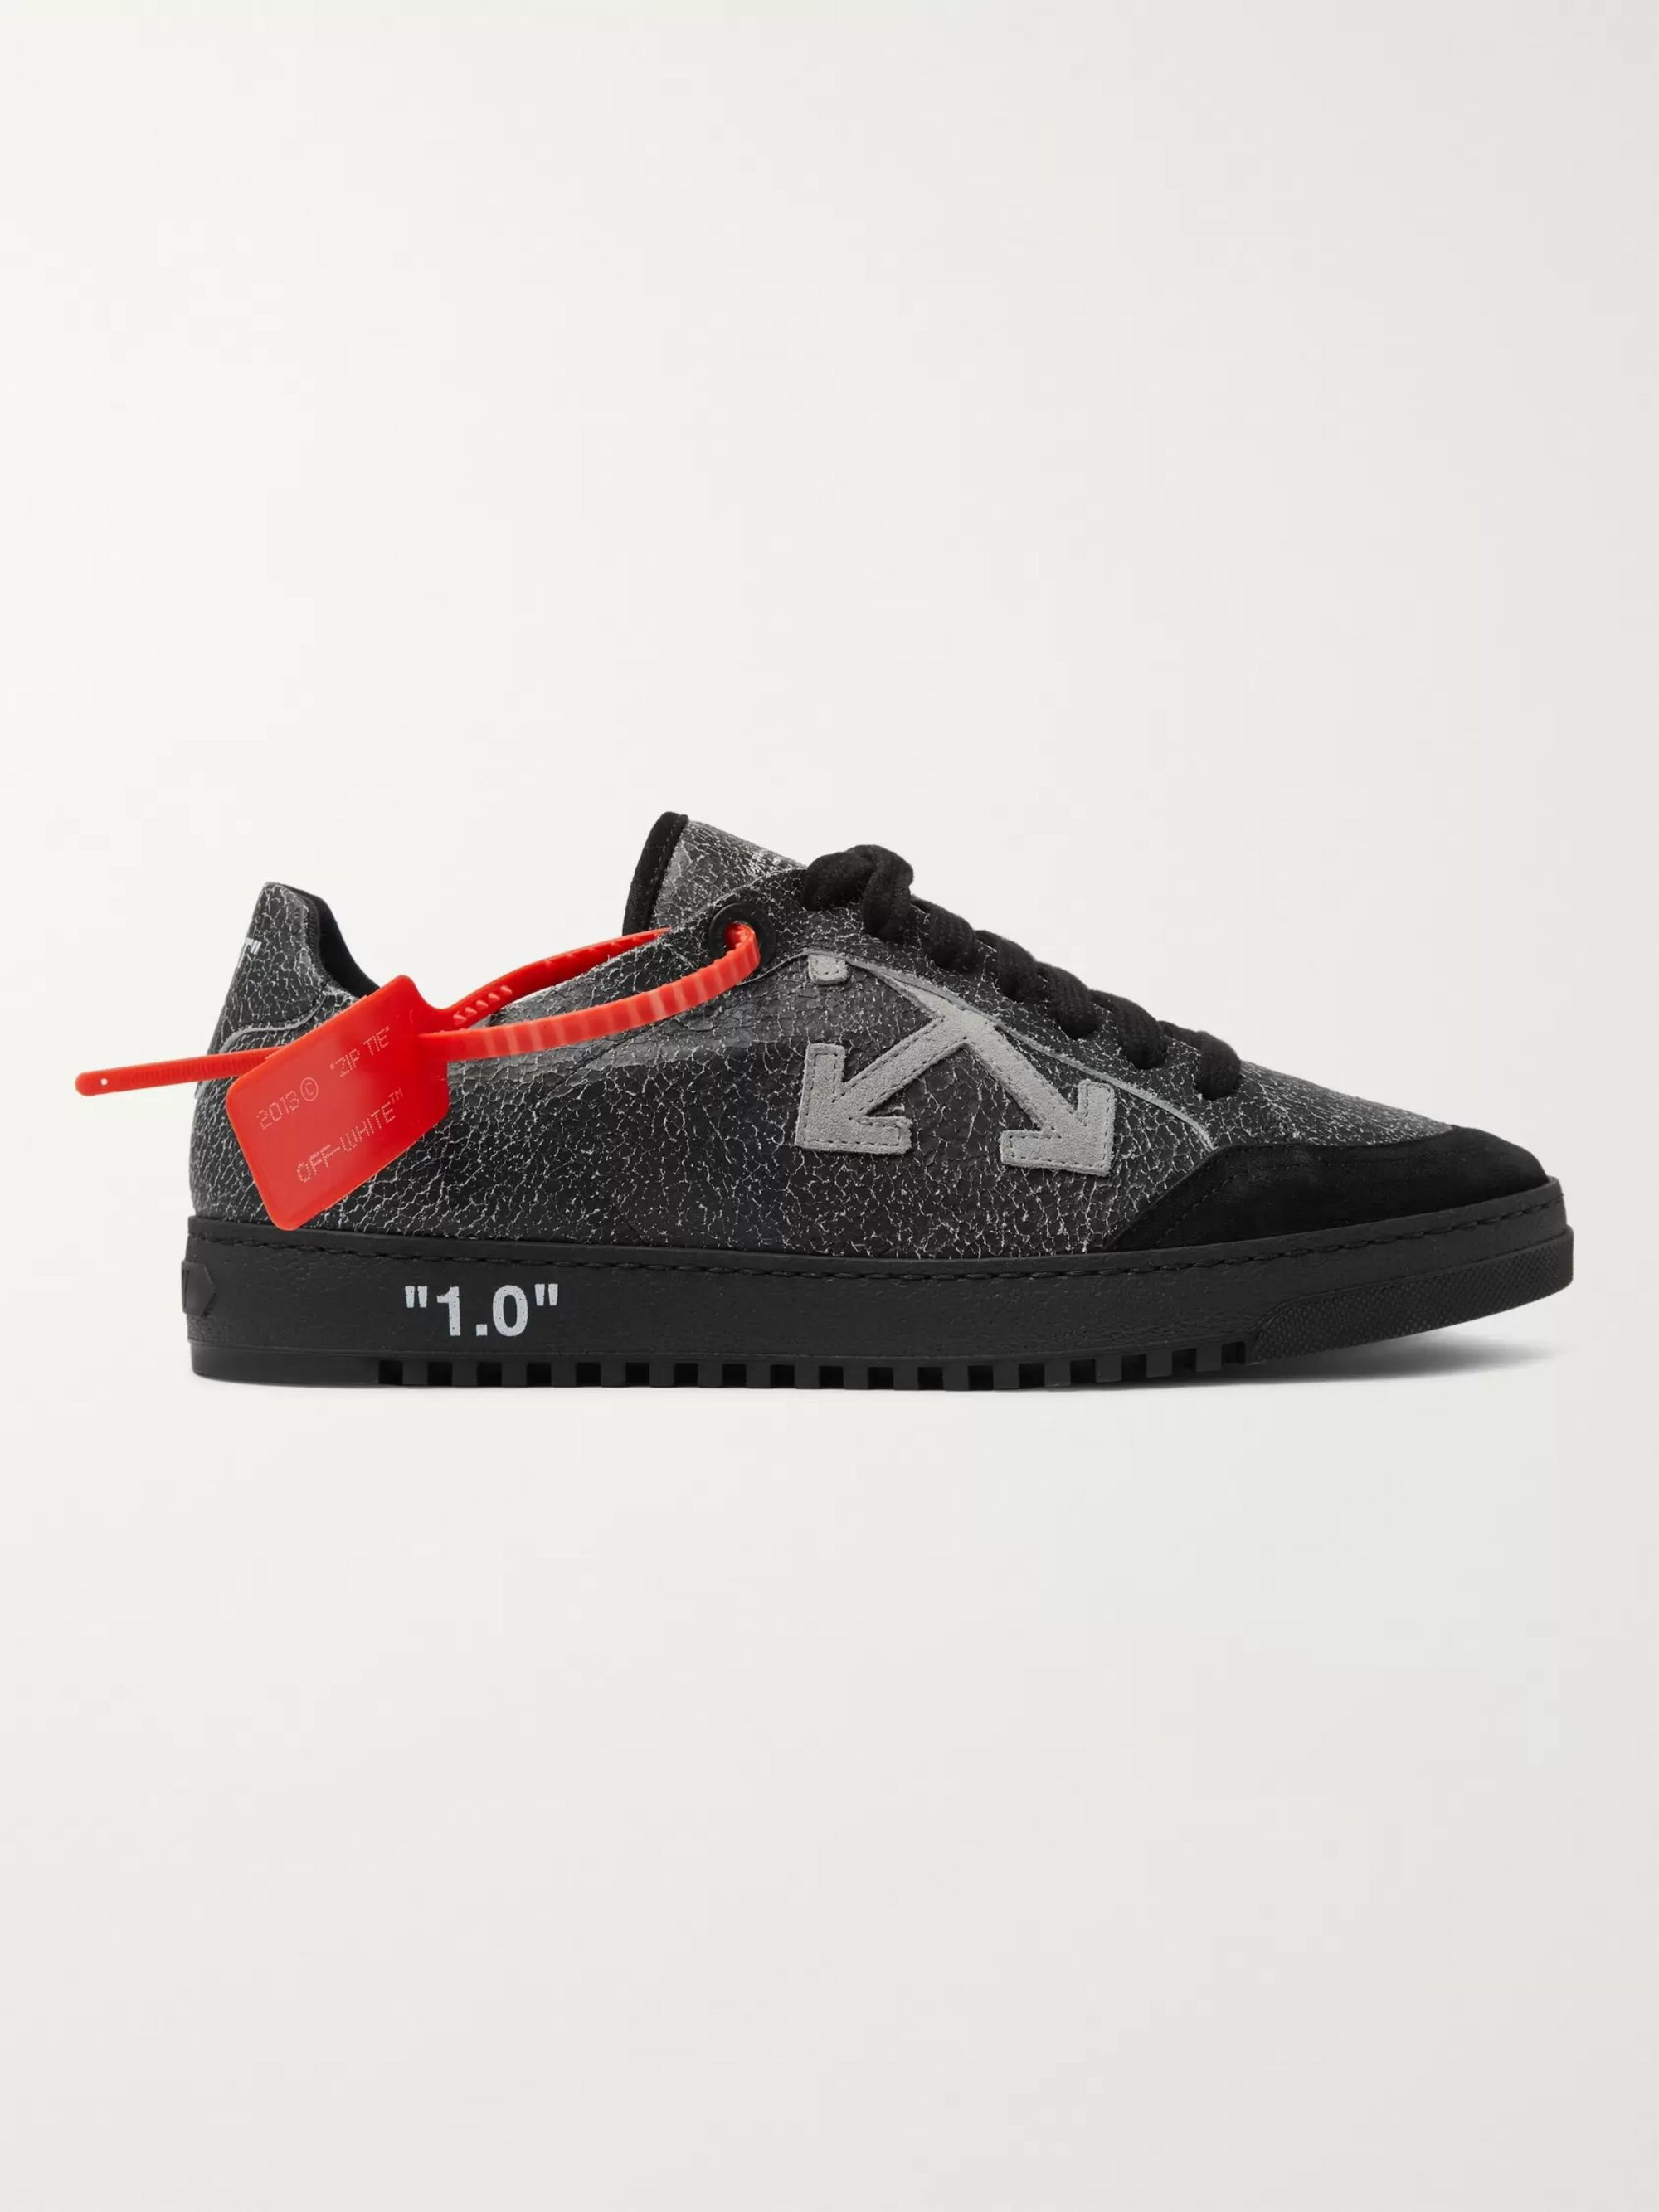 Off-White 2.0 Suede-Trimmed Cracked-Leather Sneakers